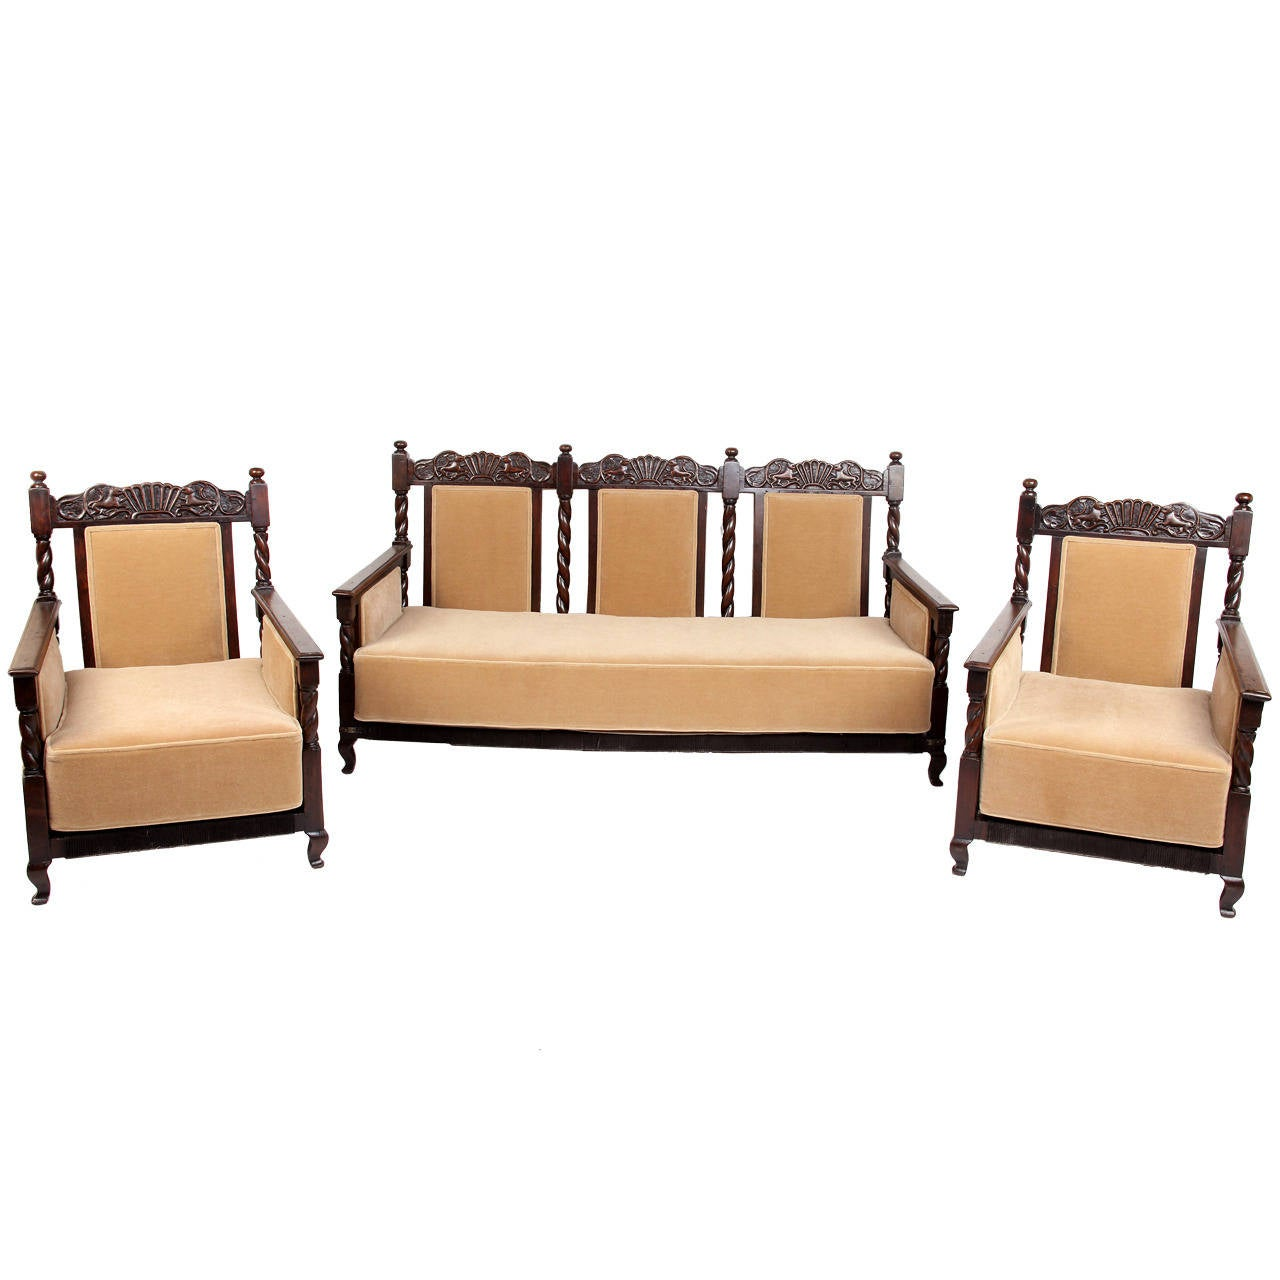 3 piece british colonial living room suite at 1stdibs for 3 piece living room furniture